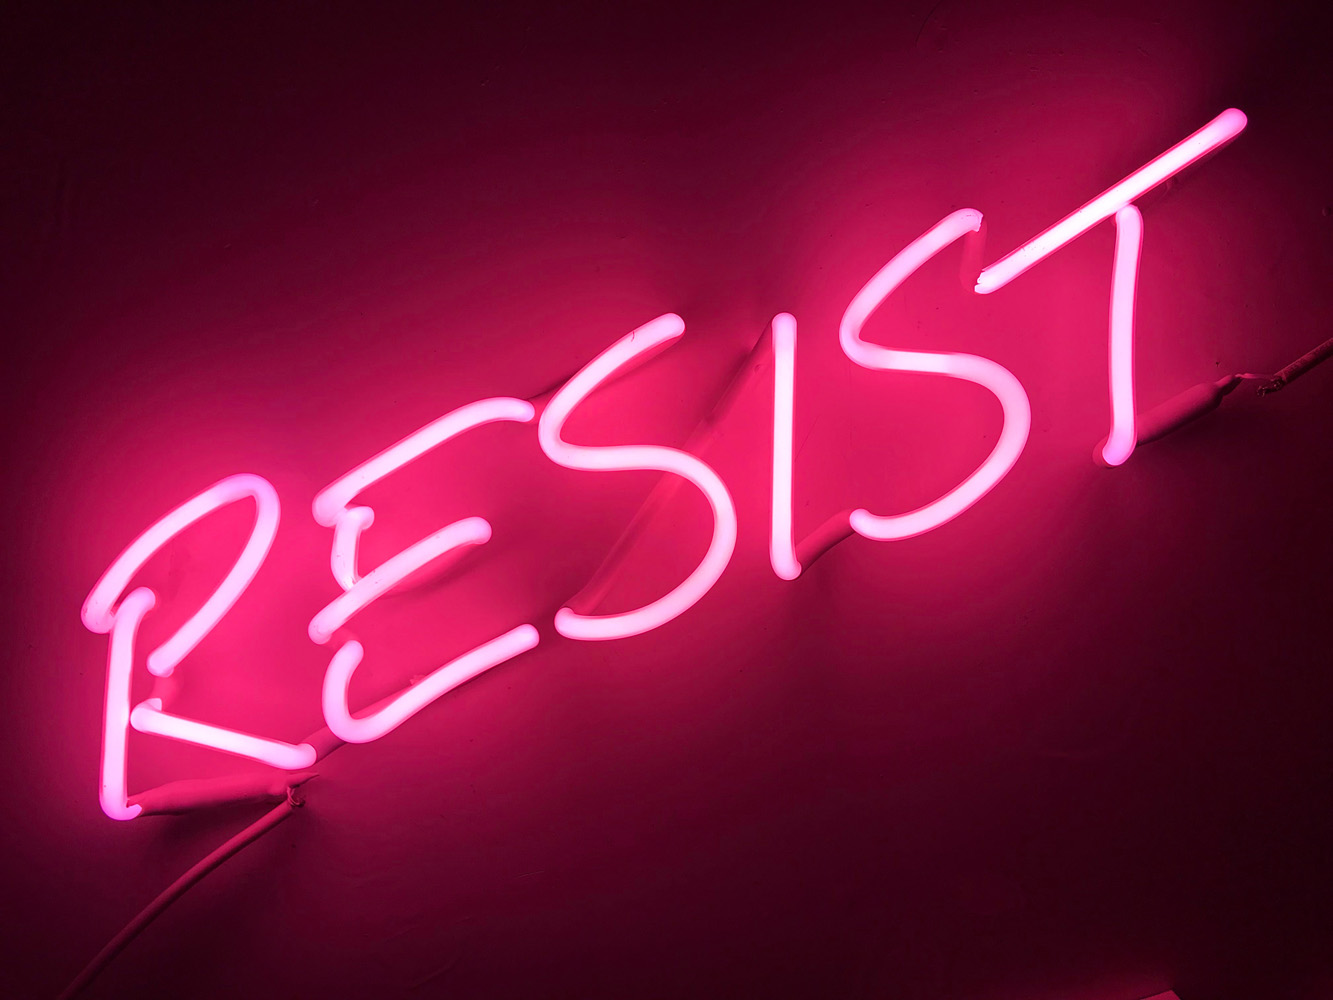 Indira-Cesarine-22RESIST-NOW22-2018-Neon-Sculpture-01x.jpg